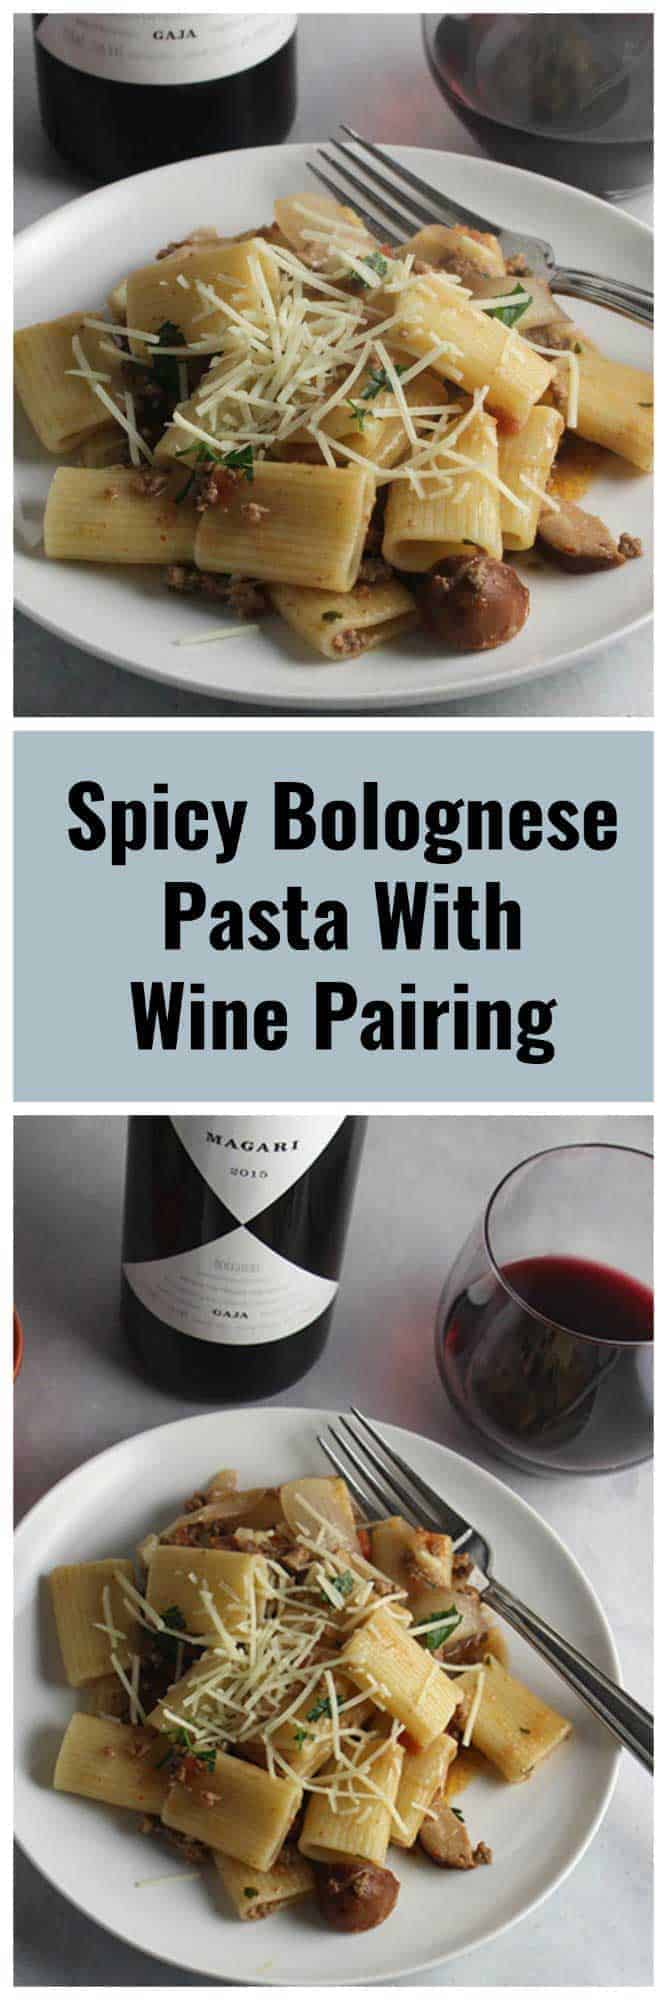 Spicy Bolognese Pasta recipe gets tasty flavor from garlic, spicy sausage and beef. Even better paired with a good glass of Italian red wine! #pasta #Bolognese #spicysauce #winepairing